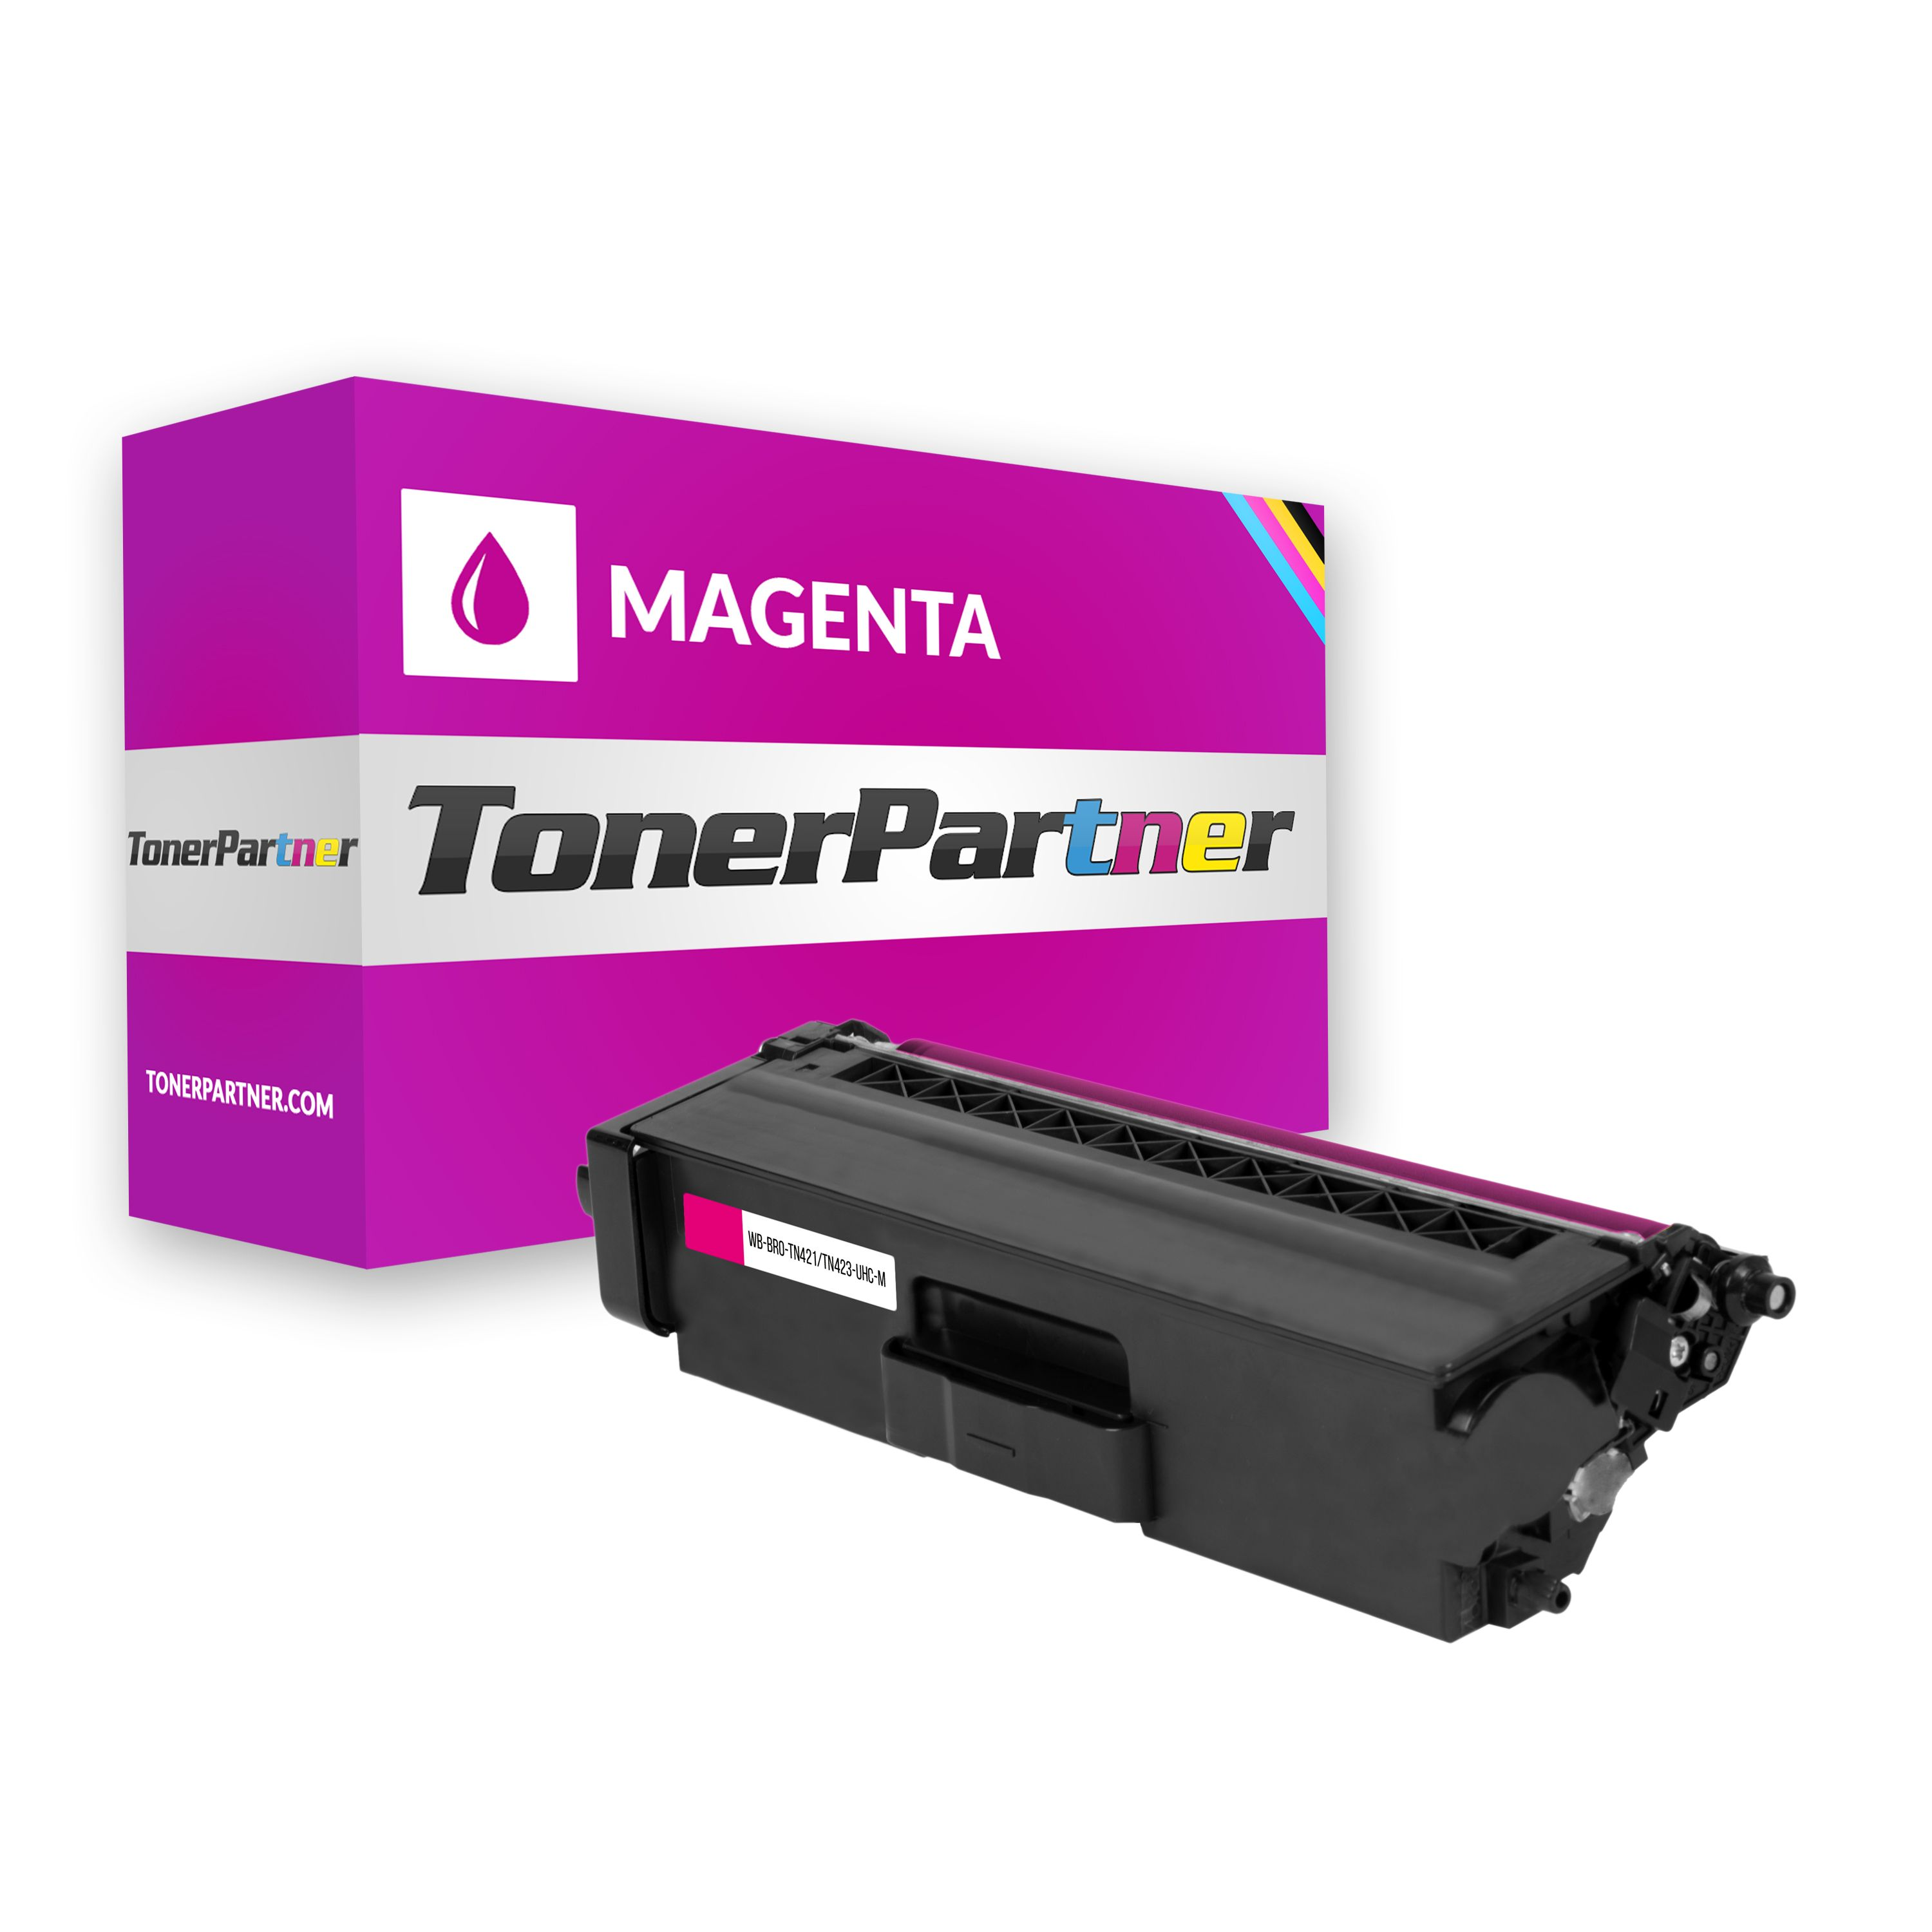 Brother TN-423M Toner magenta Kompatibel